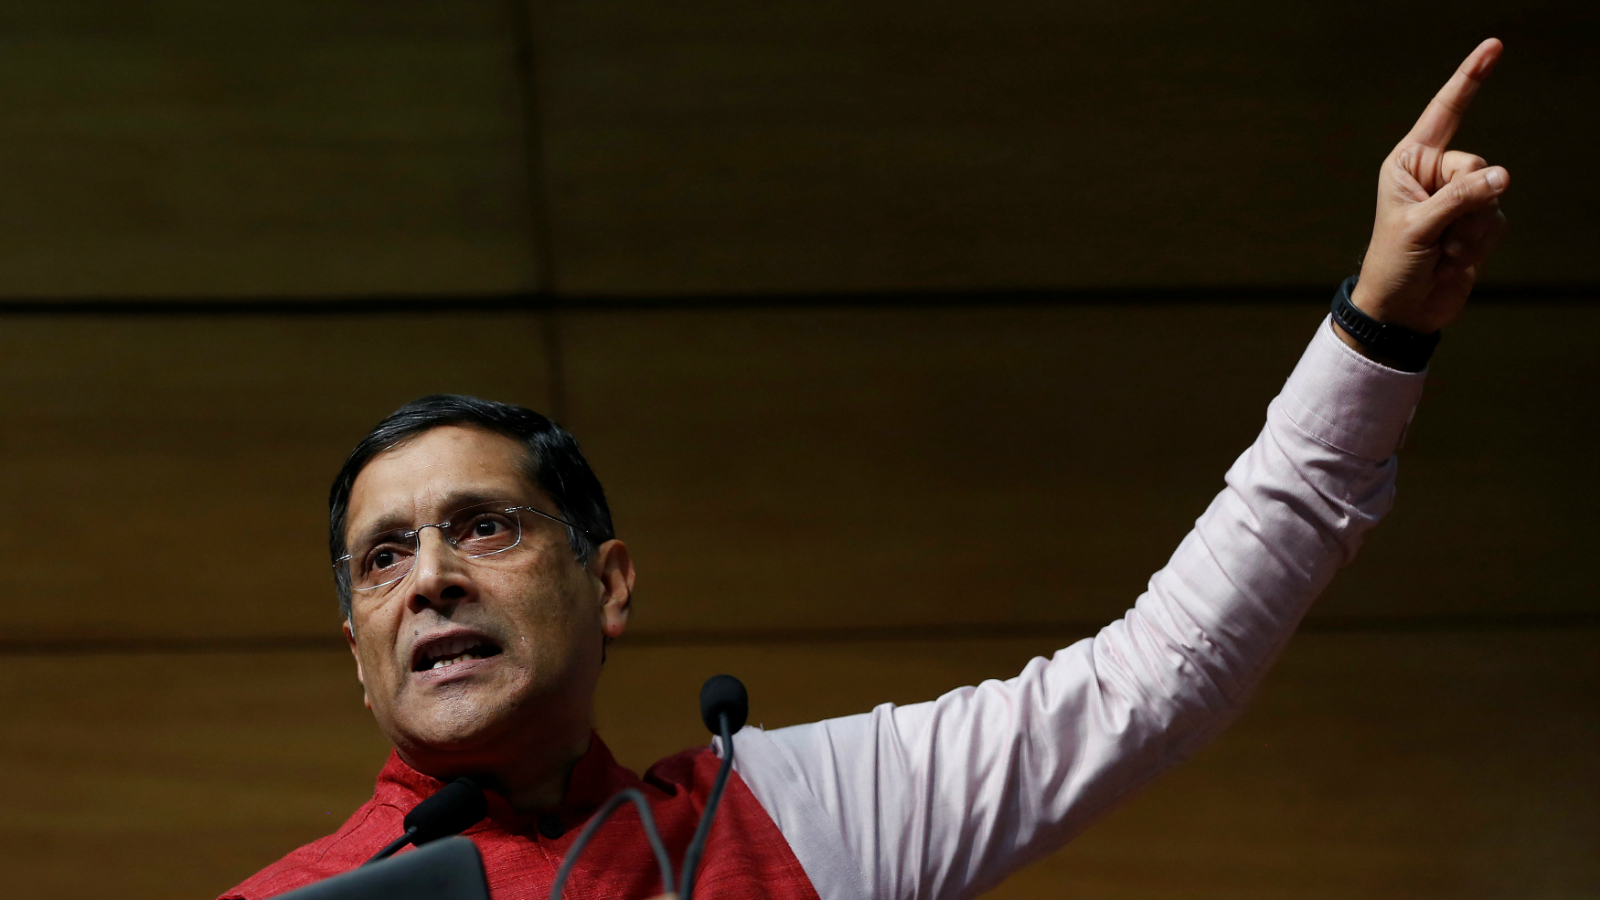 India's chief economic advisor Arvind Subramaniam gestures as he addresses the media during a news conference, in New Delhi, India, January 31, 2017.